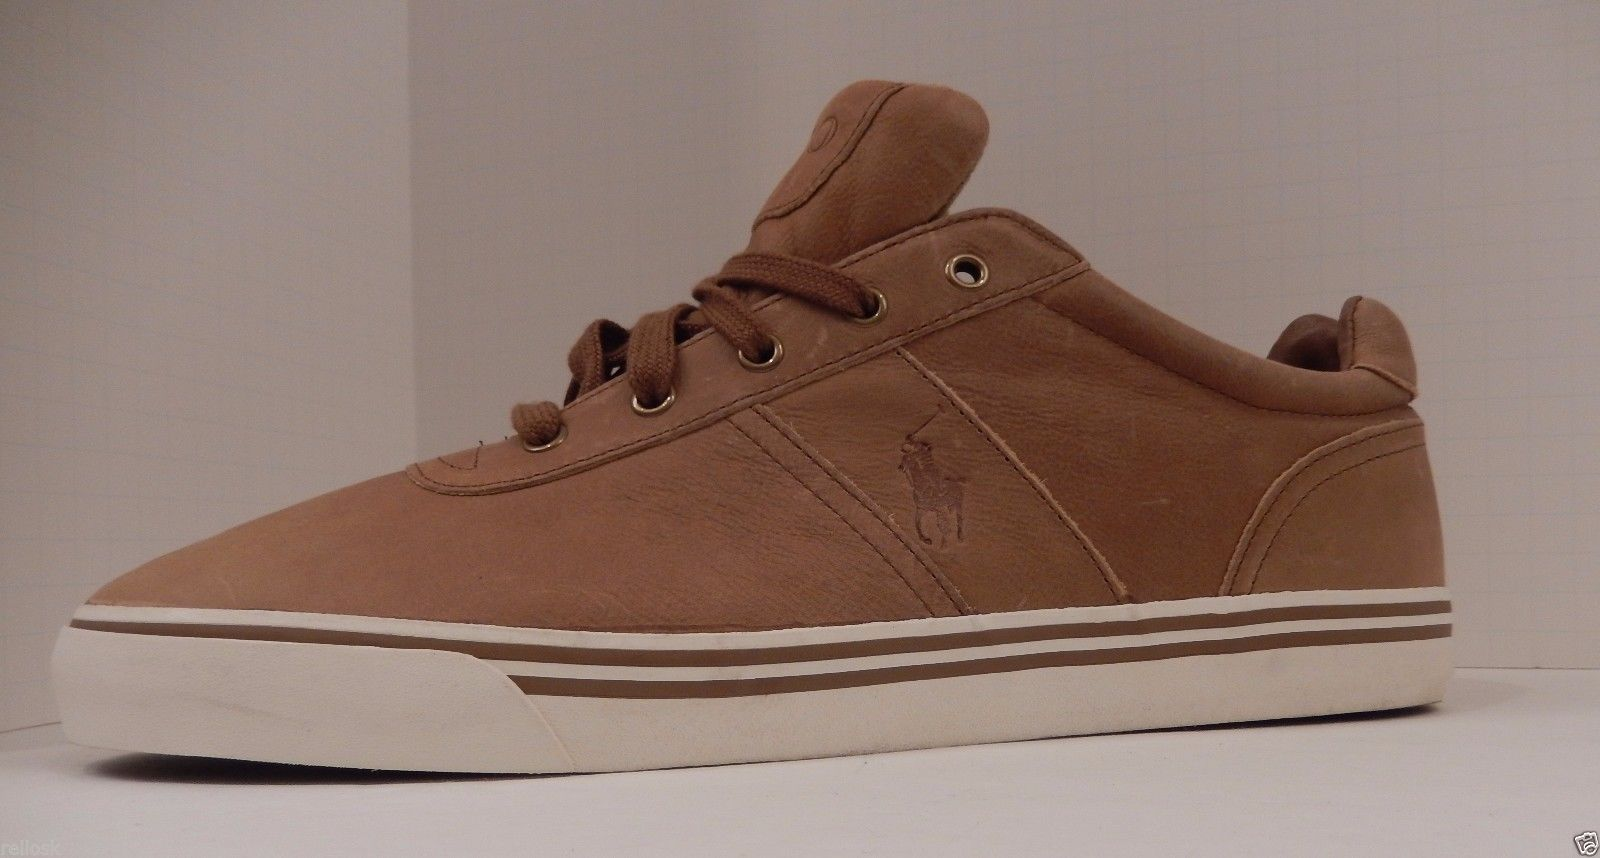 POLO RALPH LAUREN SIZE 15 D LIGHT BROWN TAN LEATHER FASHION SNEAKER SHOE HANFORD